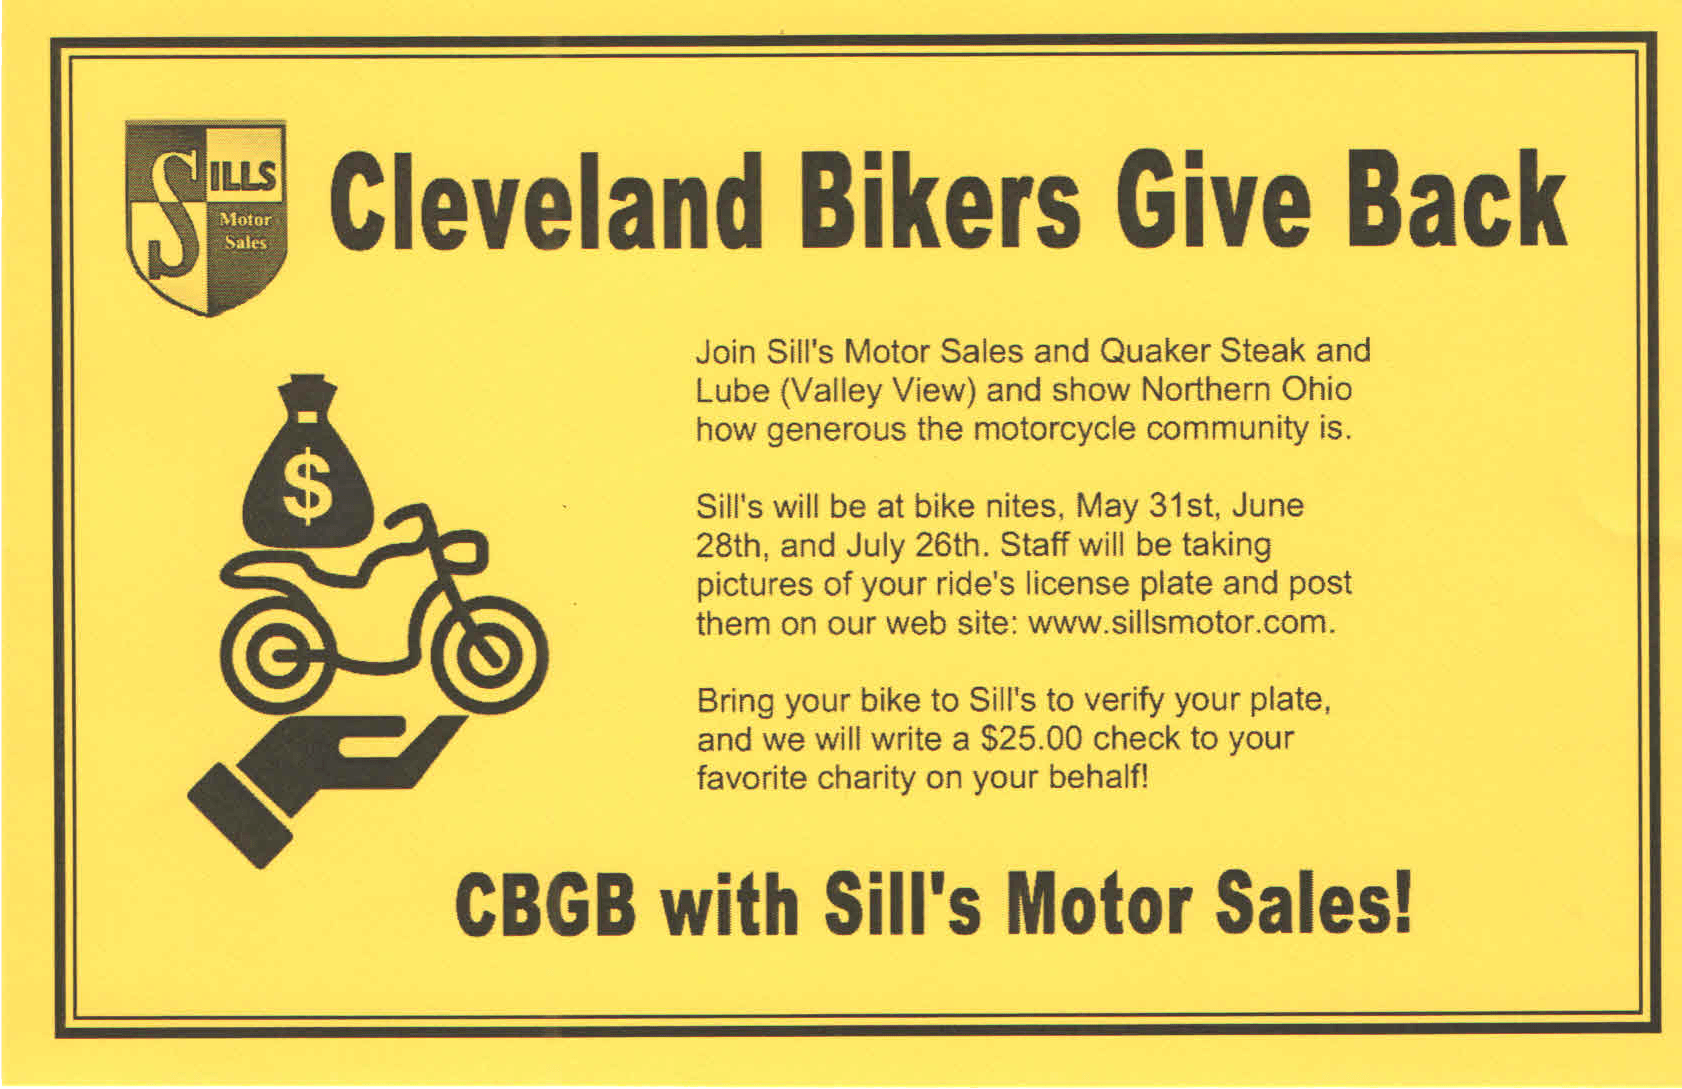 sills motor sales is located in cleveland, oh. shop our large